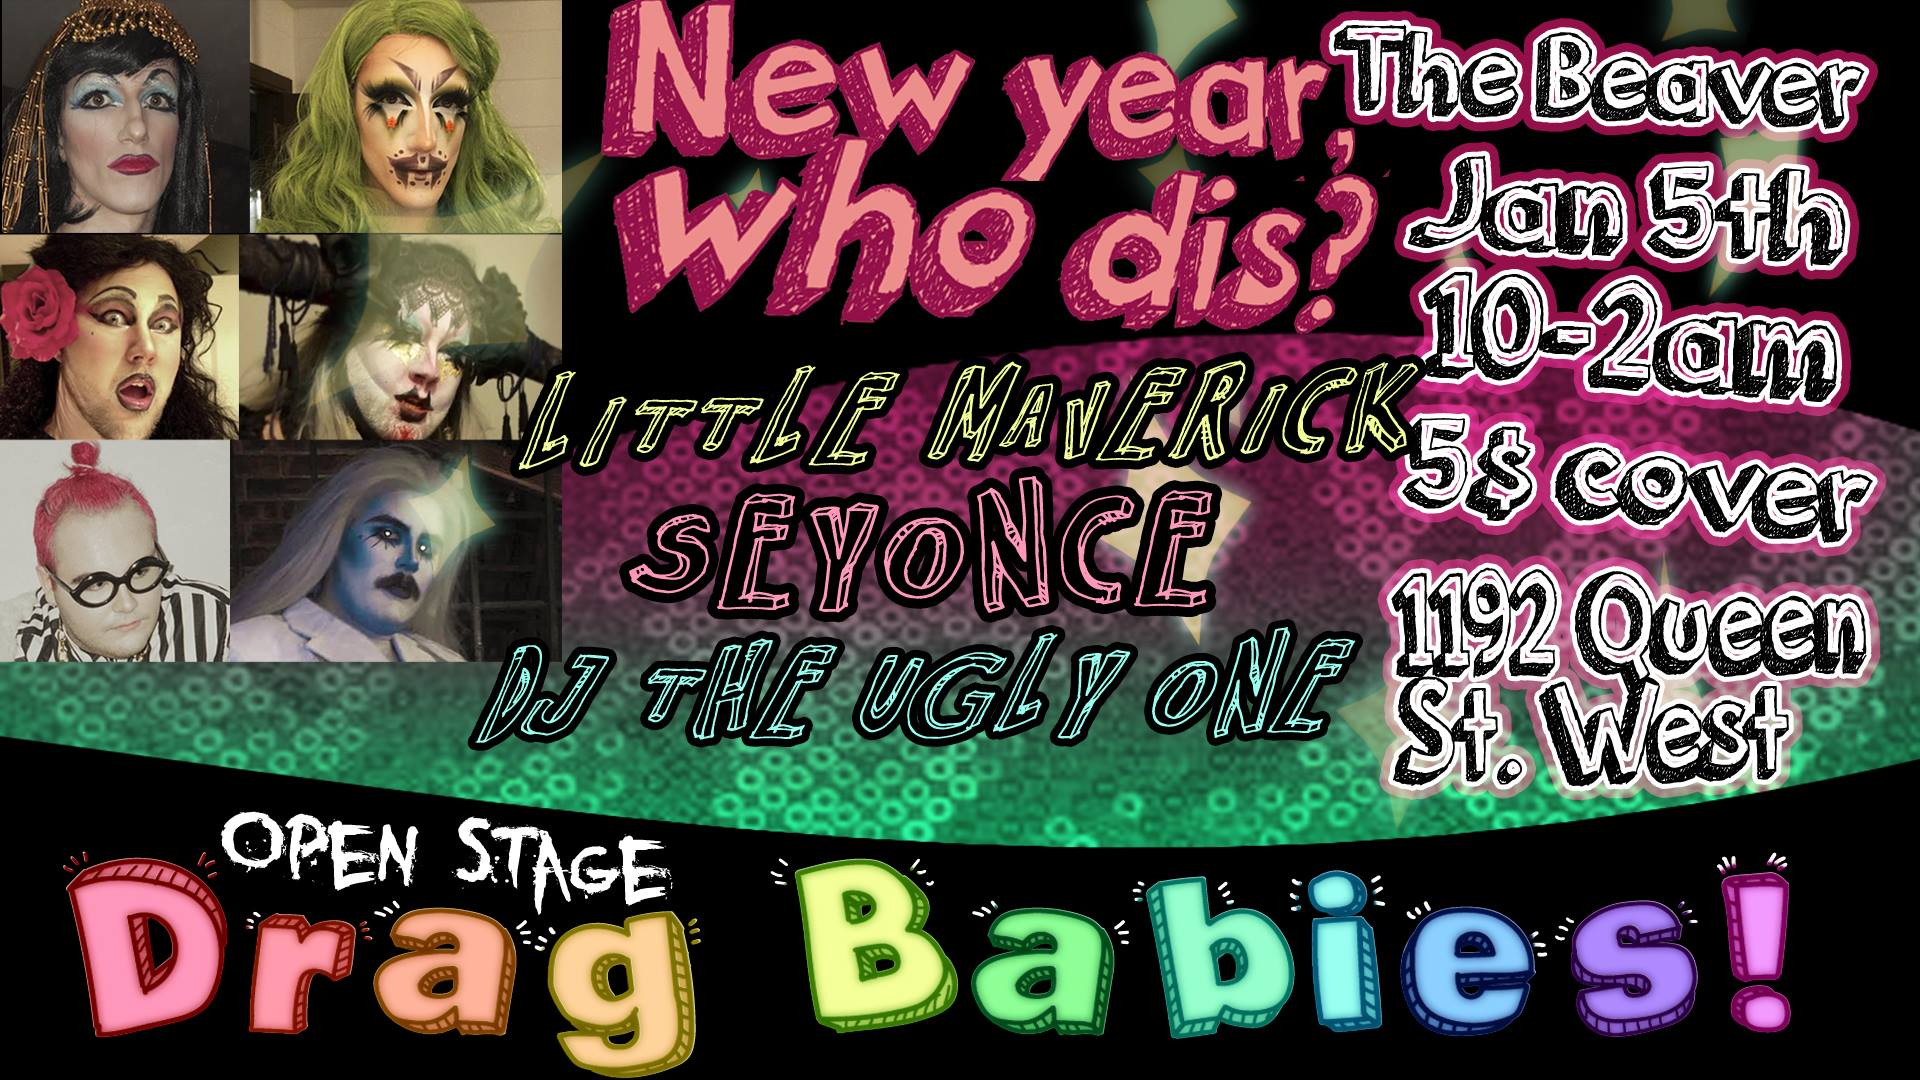 Drag-Babies!-New-Year-Who-Dis?